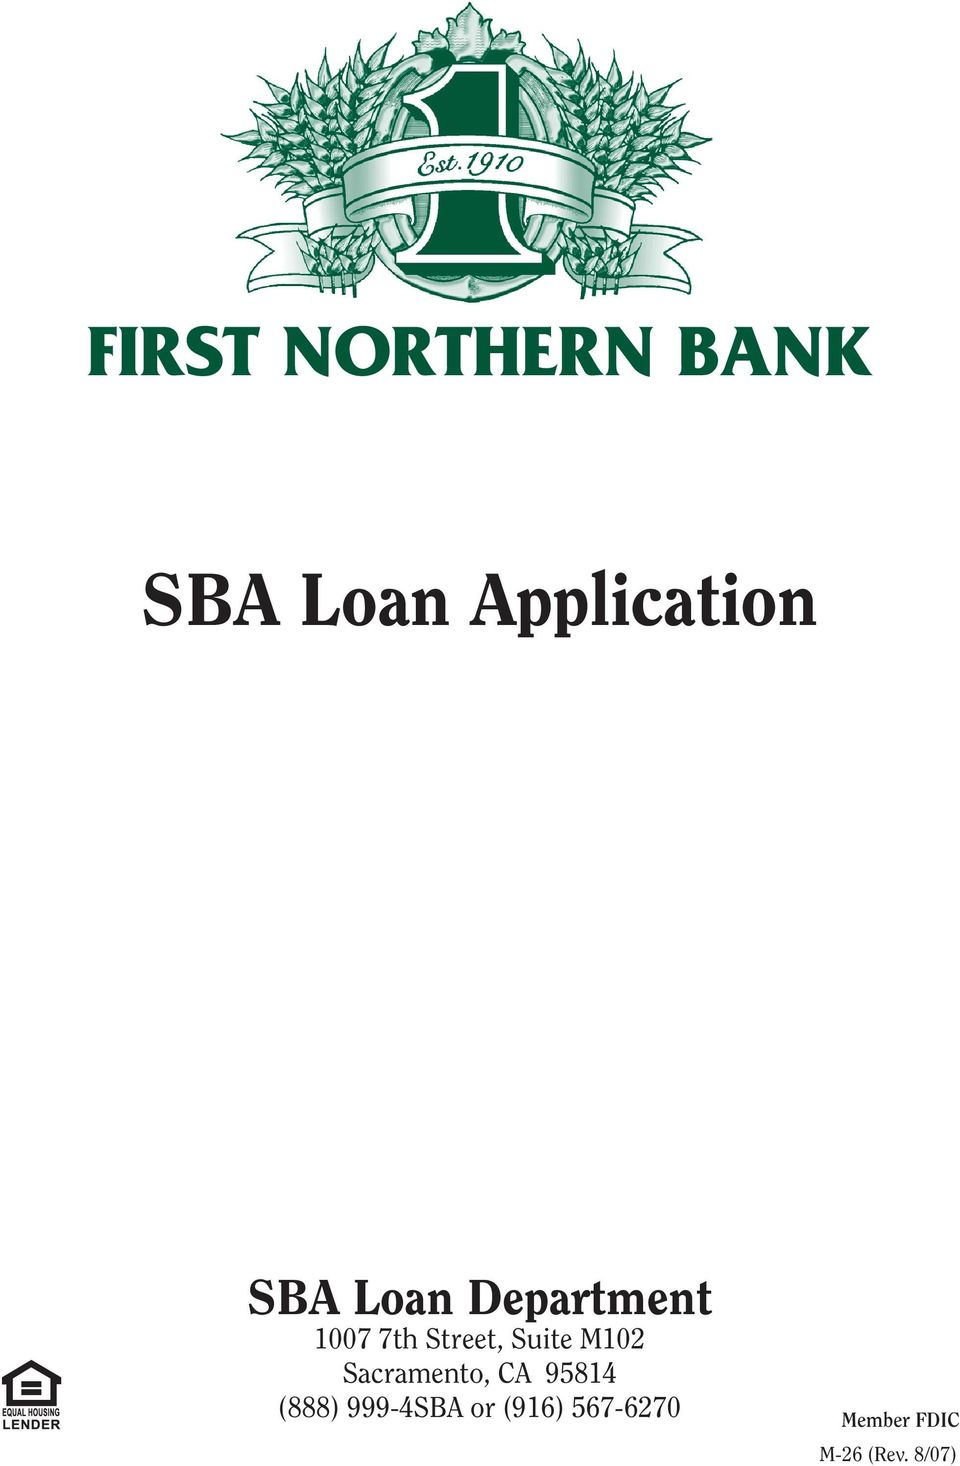 First Northern Bank Sba Loan Application  Pdf. Training For Sales Managers Best Travel Visa. Storage Units St Paul Mn Movers Cedar Park Tx. Apache Vulnerability Scanner P H D Meaning. Best Rewards Checking Account. Met Life Whole Life Insurance. Plastic Surgeon In Baltimore Osu Help Desk. How To Build A Secure Website. Virtual Office In Washington Dc